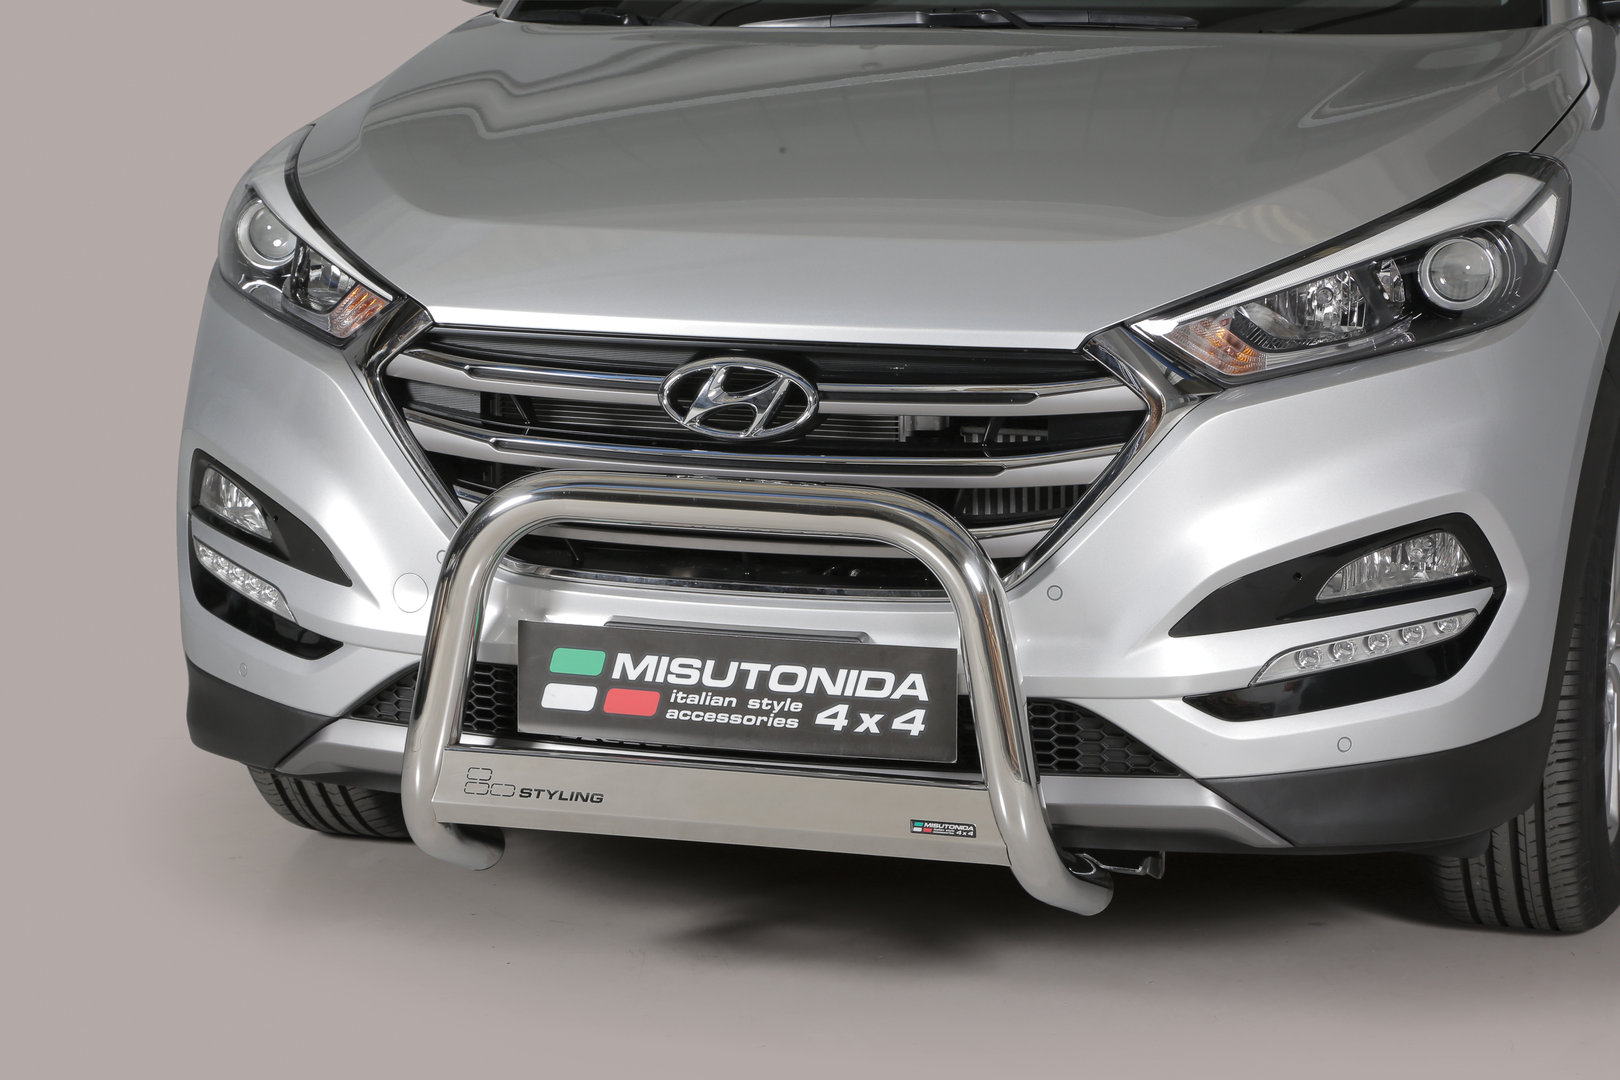 hyundai tucson front guard 2015 tuning and lightining. Black Bedroom Furniture Sets. Home Design Ideas